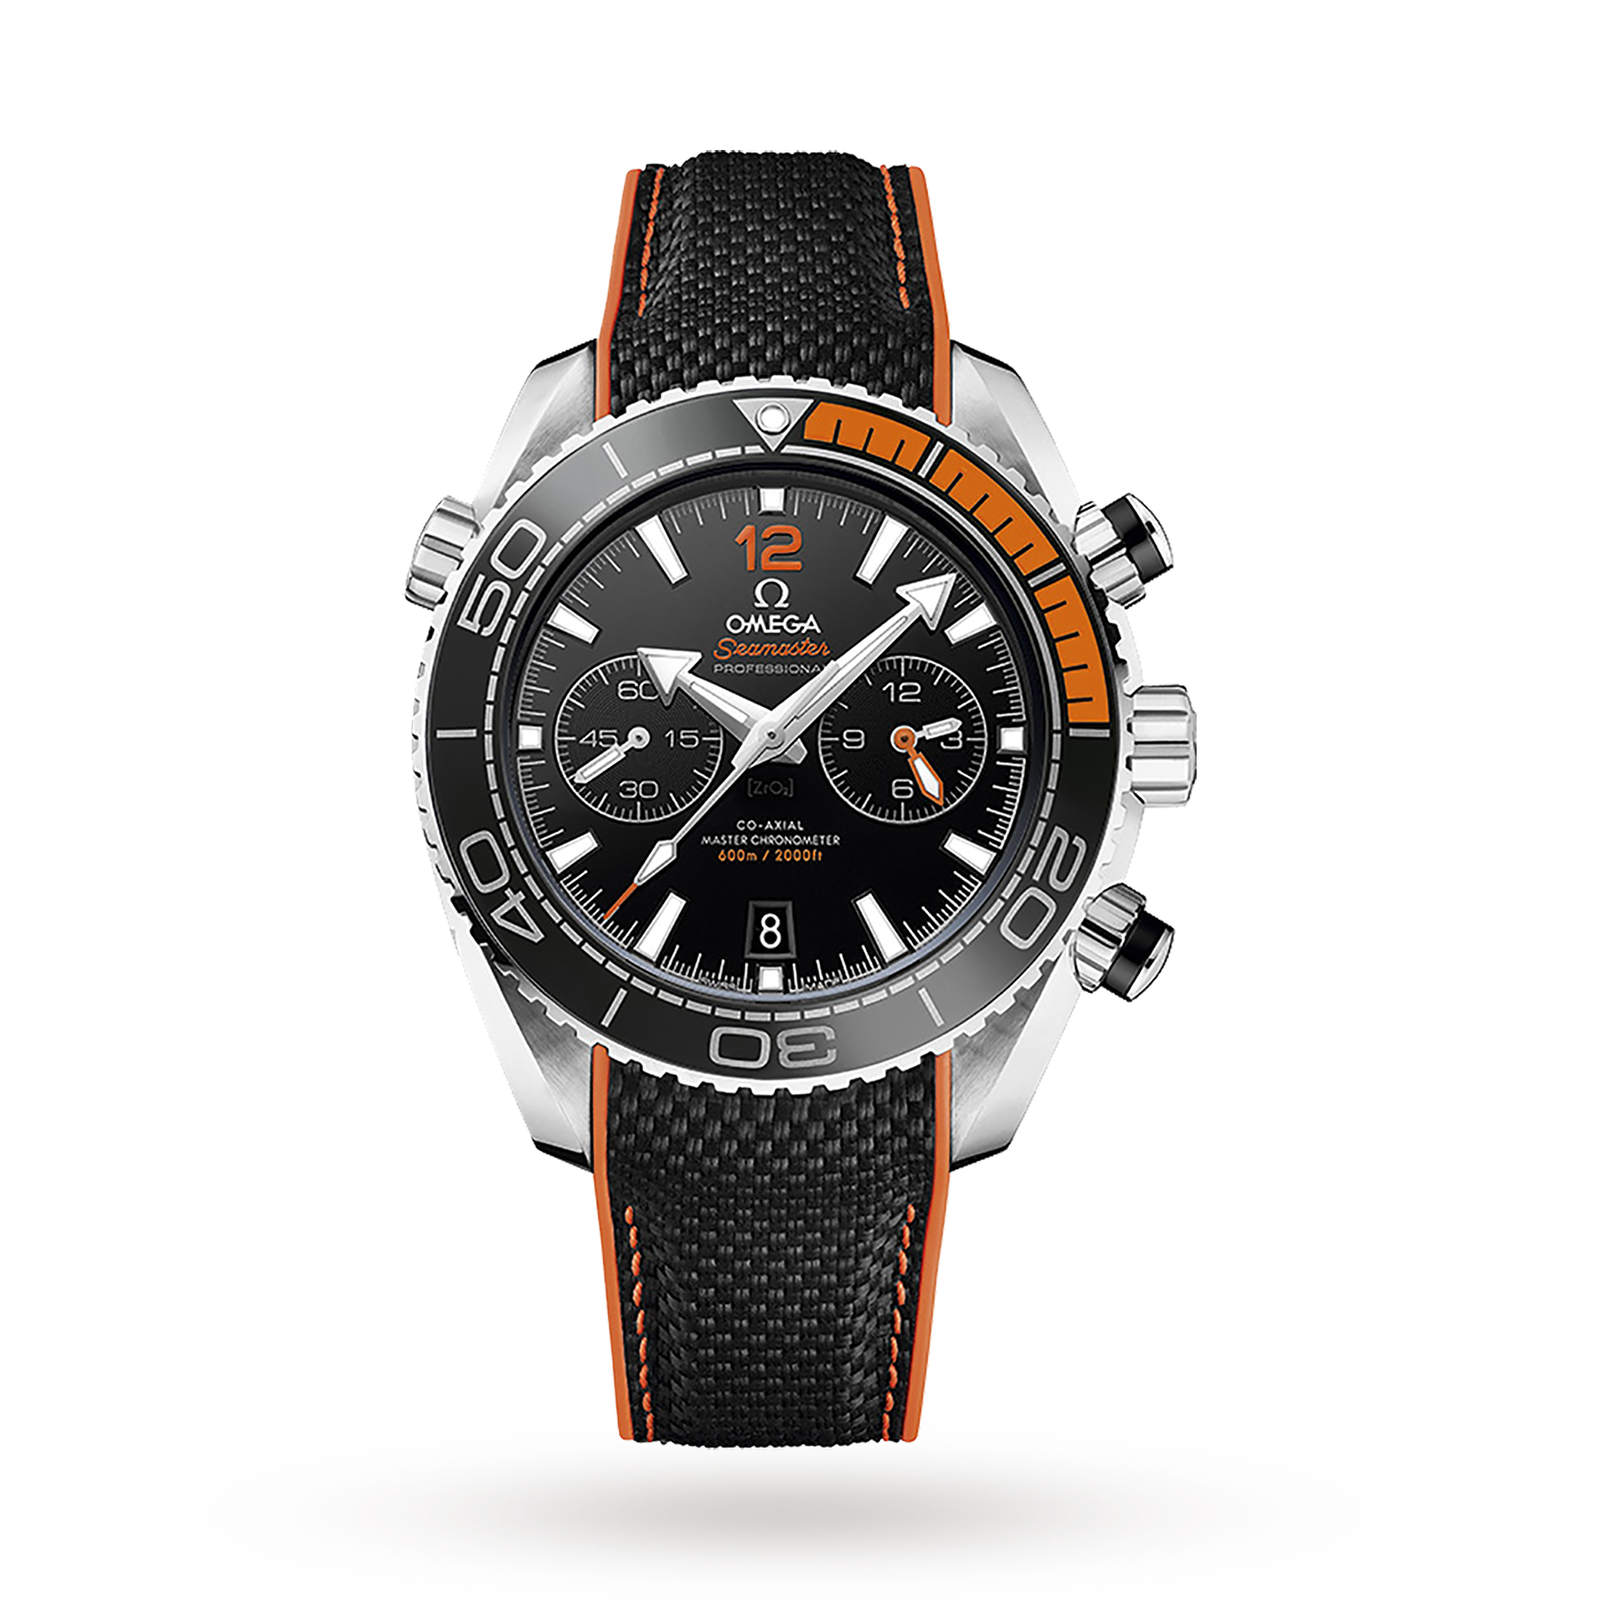 omega planet watches watchpro year the of ocean sports seamaster